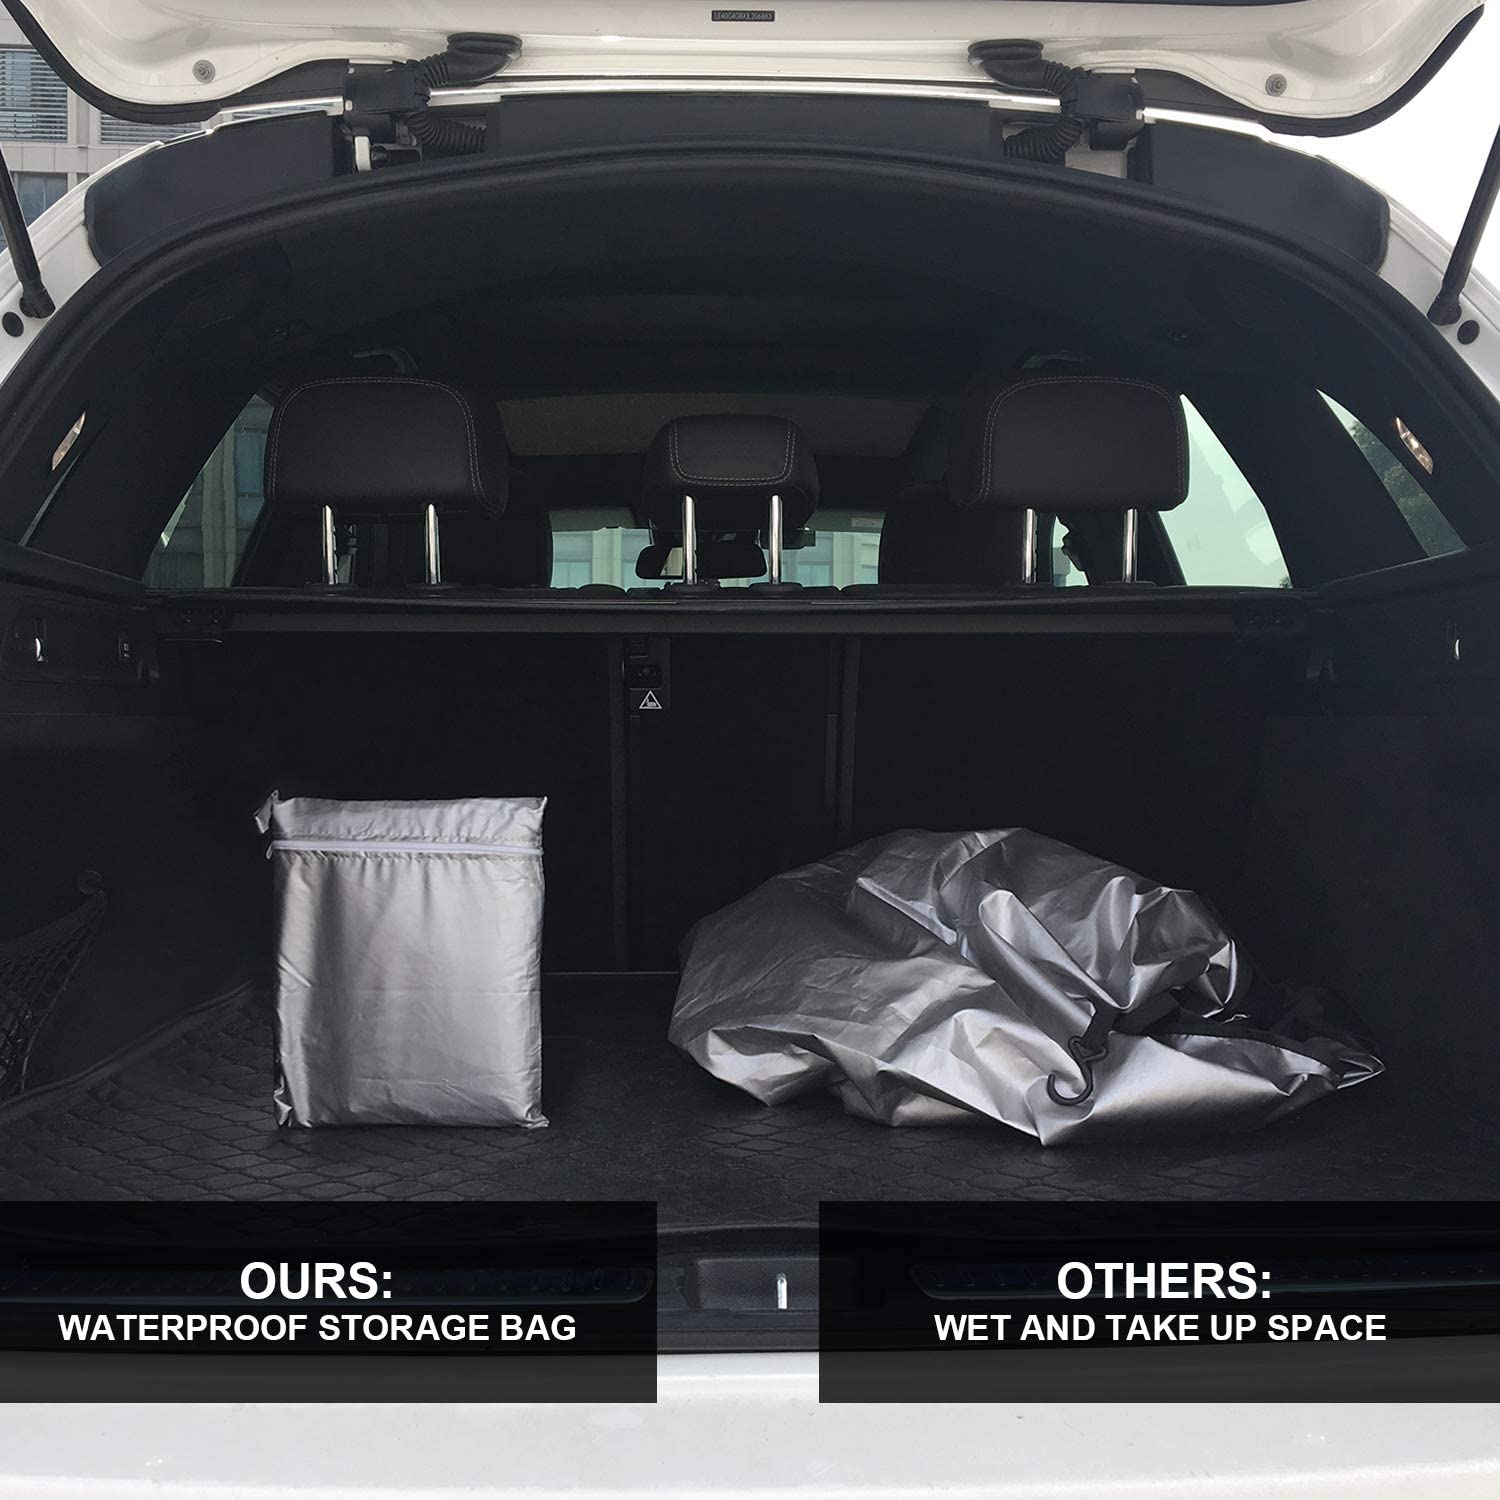 SUKCESO/Windshield/Snow/Cover./Upgraded/Waterproof/Oxford/210D/Windshield/Cover/for/Ice/Snow/with/Rear/Mirror/Covers./Fits/Most/Cars,/Trucks,/SUVs,/&nbs